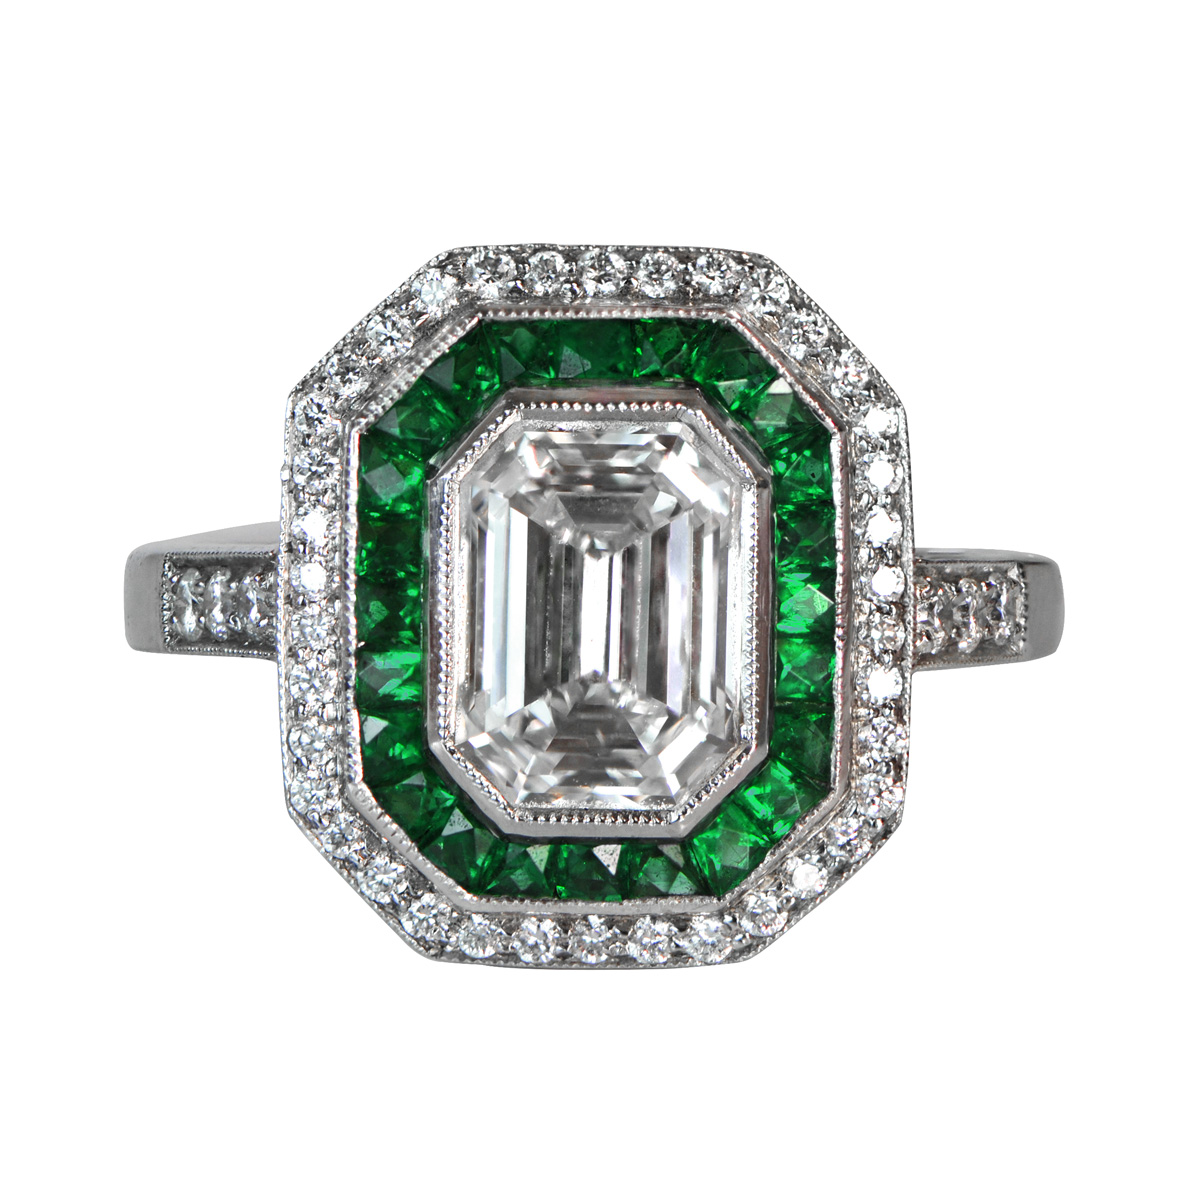 Emerald And Diamonds Estate Diamond Jewelry